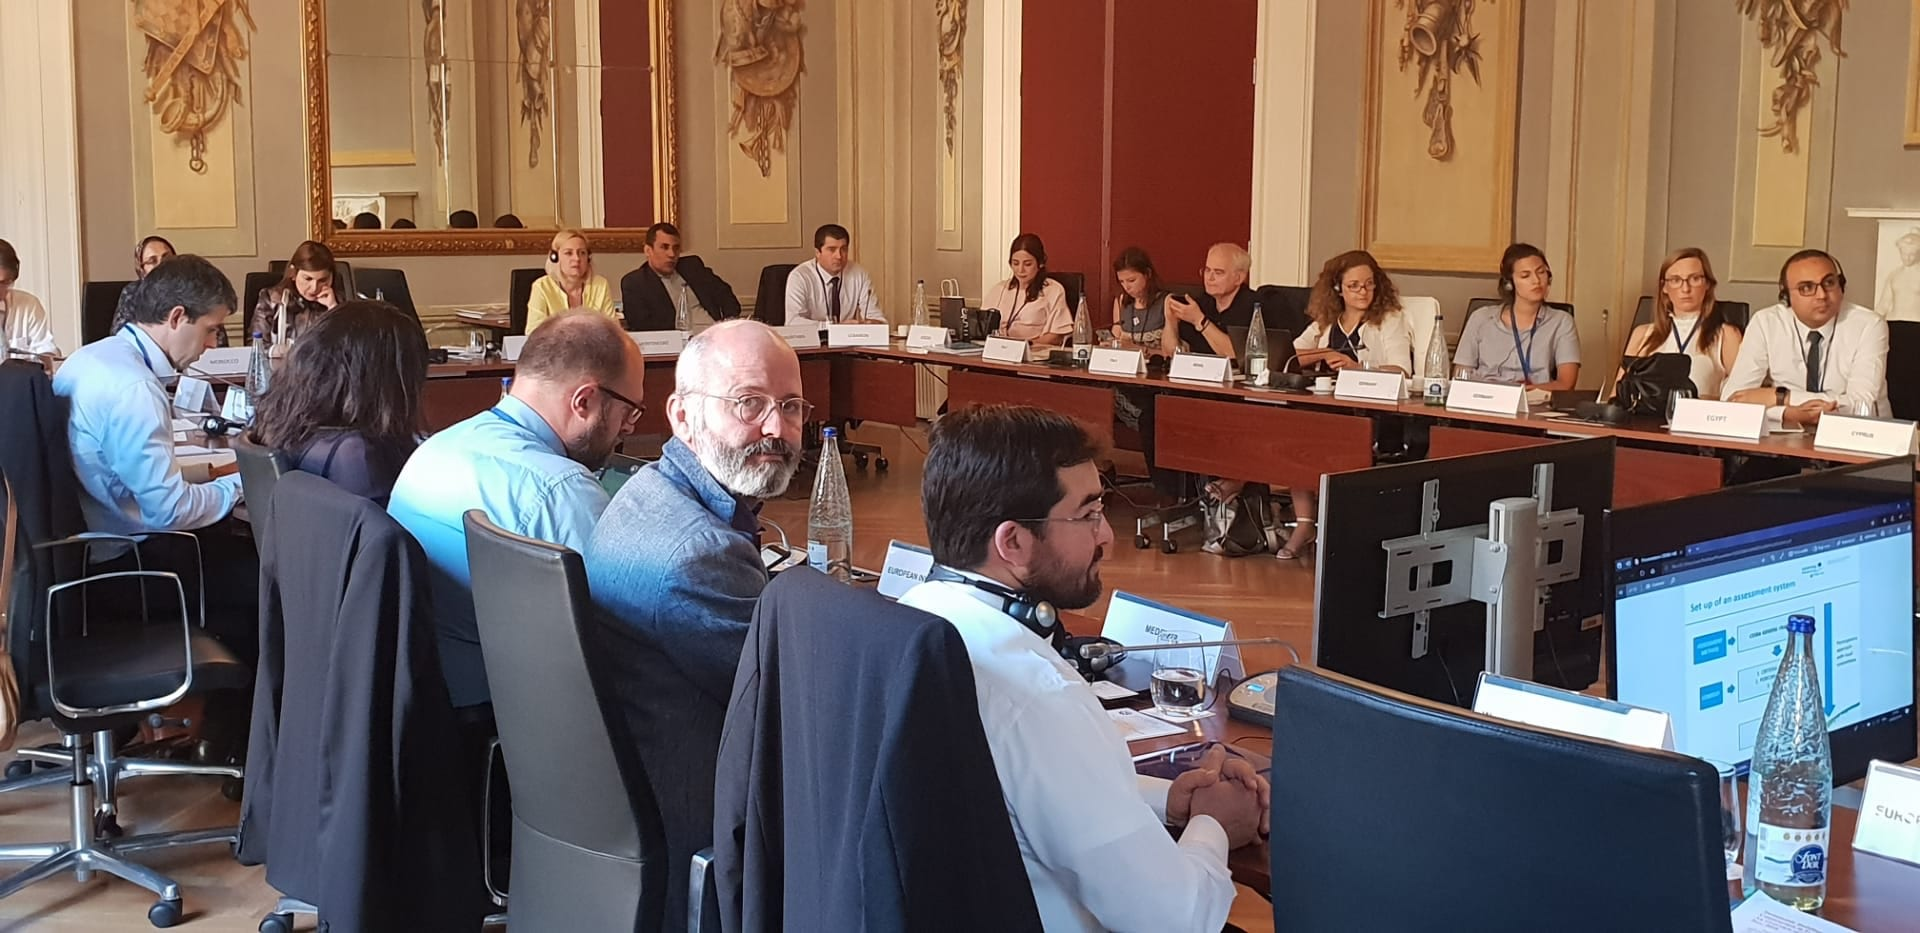 meetMED and the UfM Working Group on Sustainable and Affordable Housing: new synergies arising